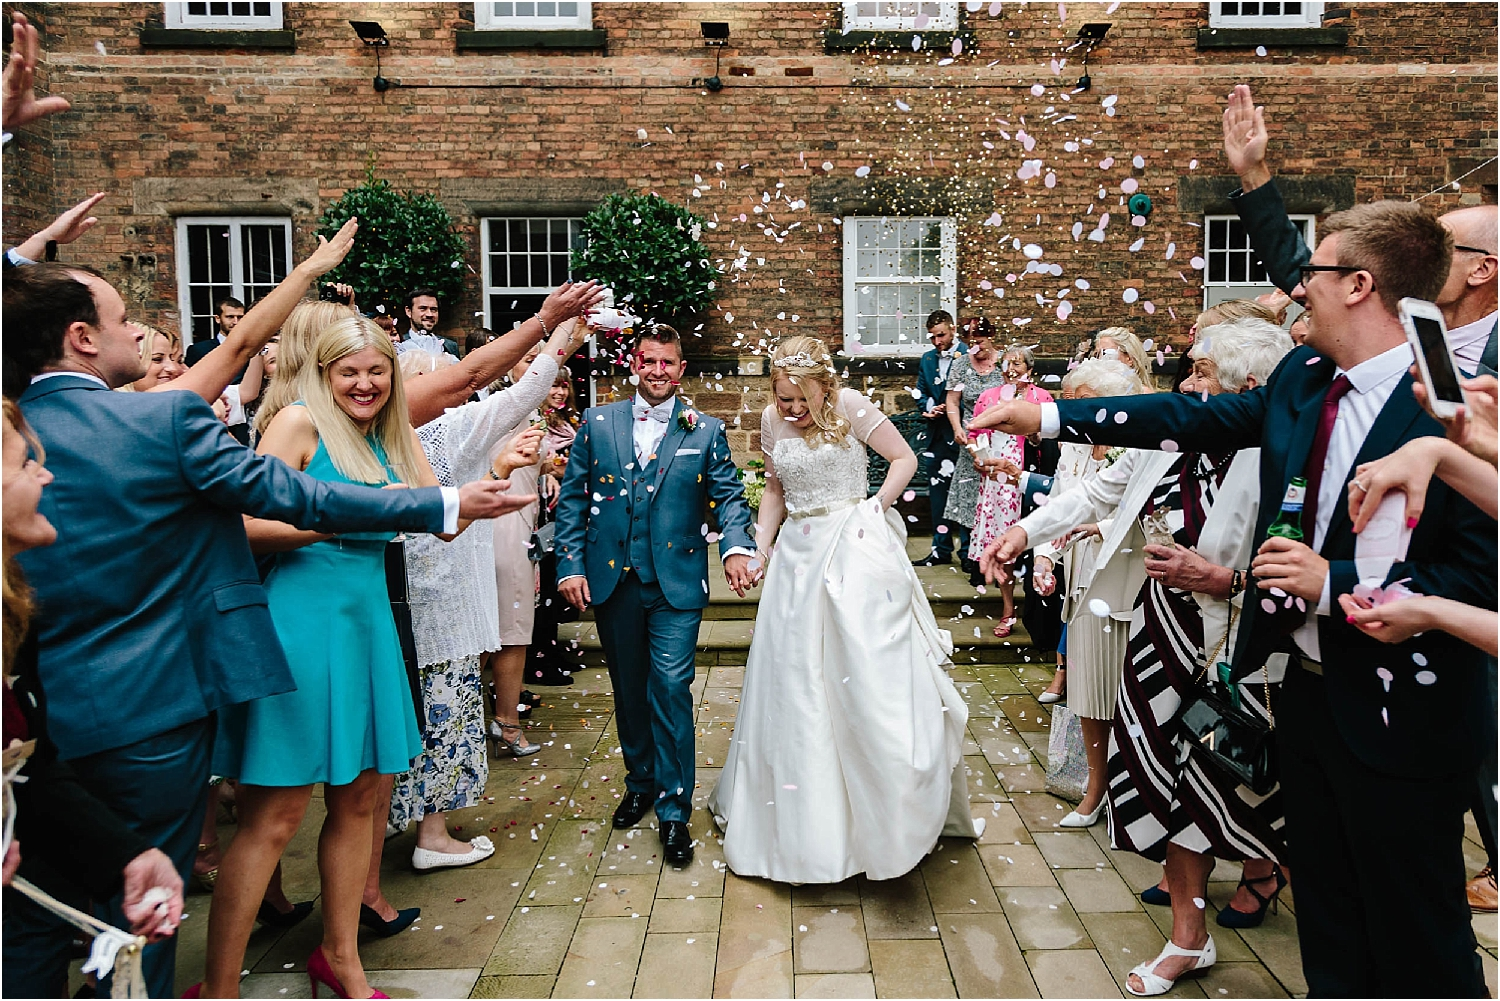 Wedding-west-mill-venue-professional-photographer-natural-documentary-nottingham-derby-267_BLOG.jpg